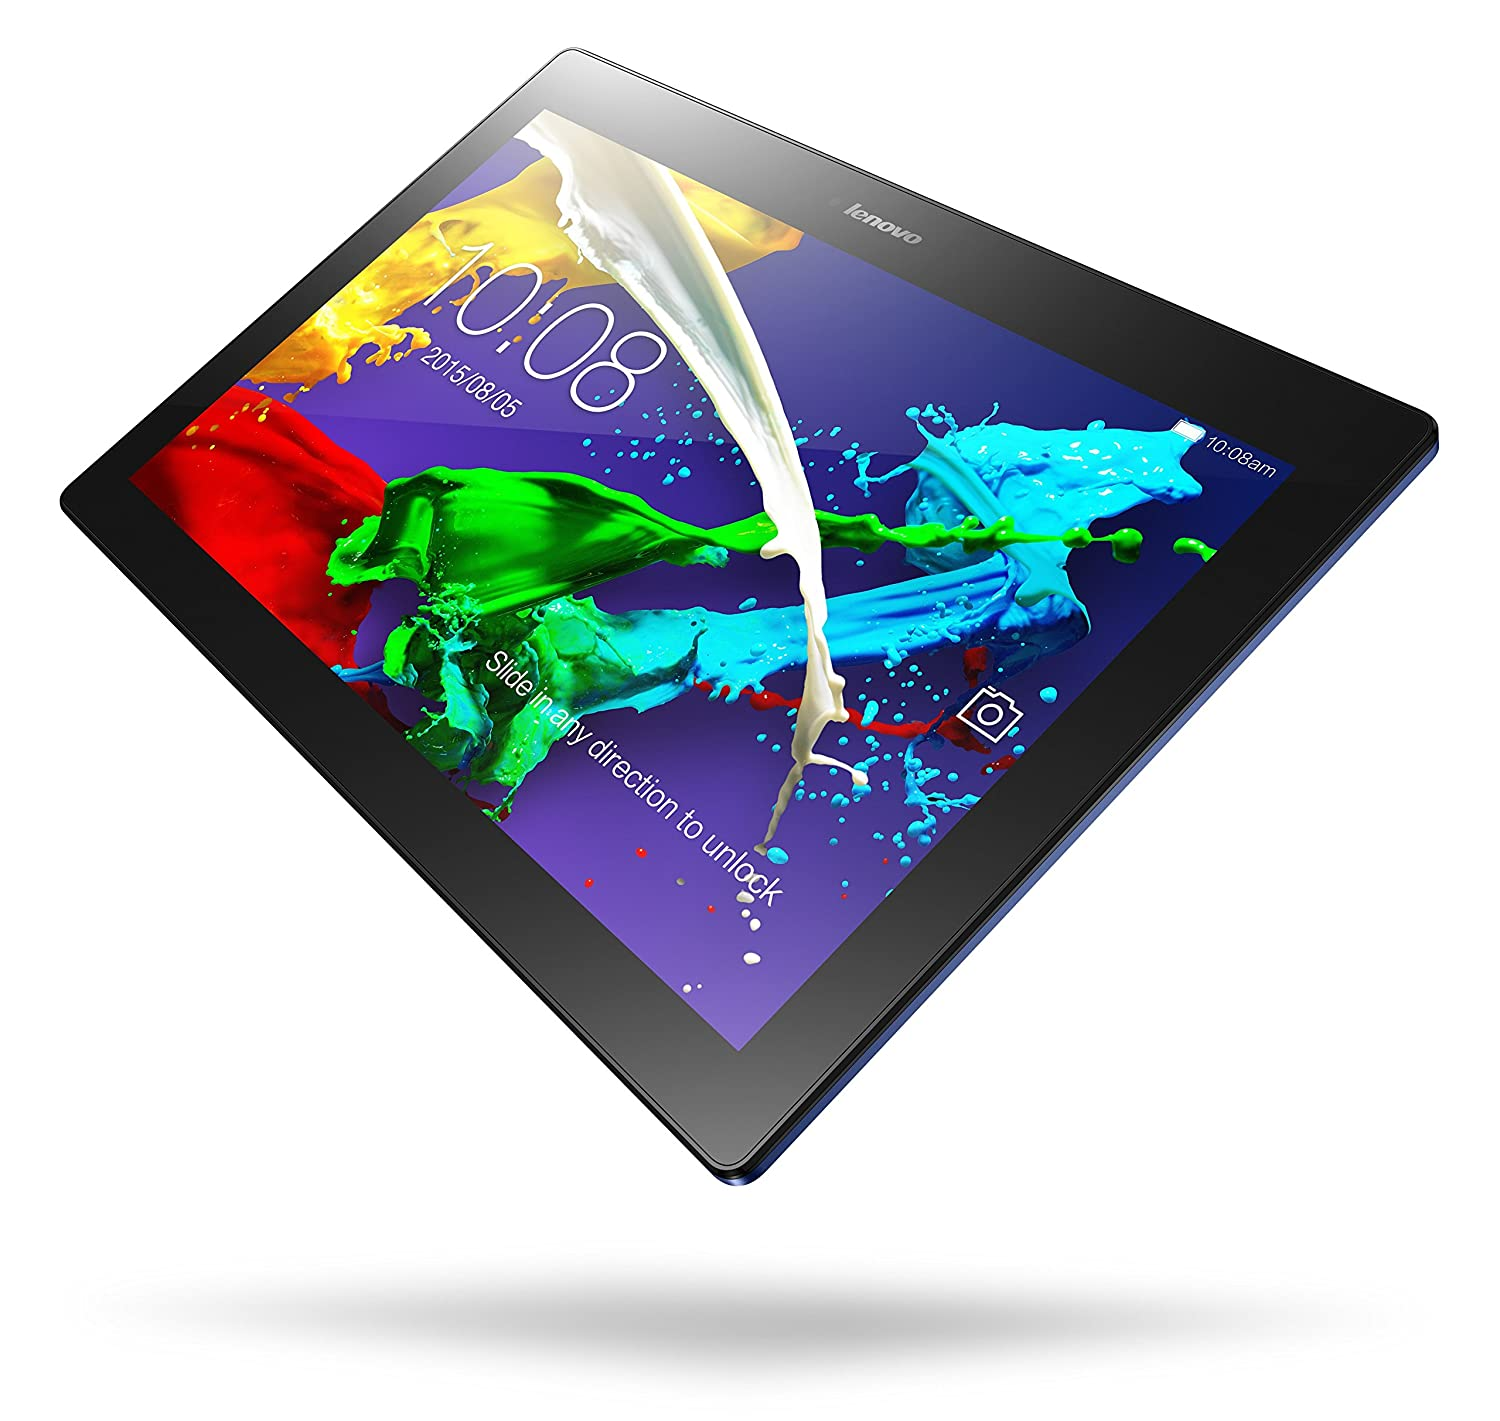 Lenovo Tablet amazon